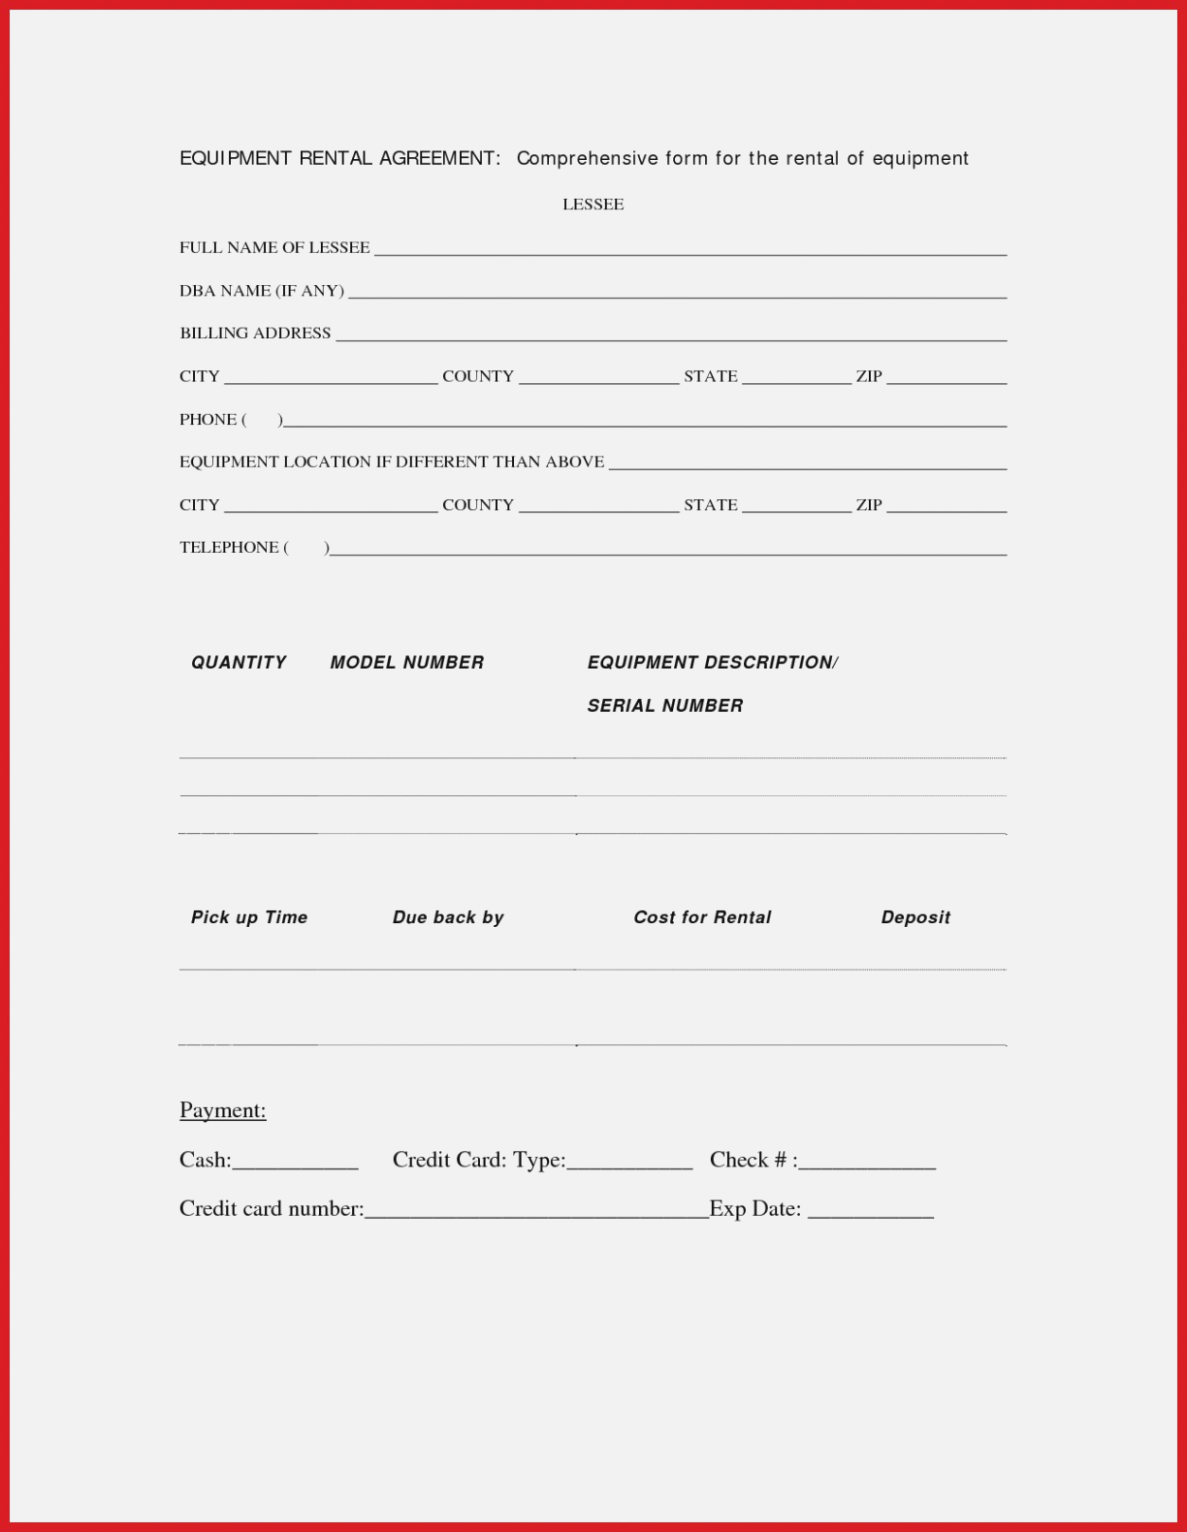 Pa Property Taxrent Rebate Application Forms